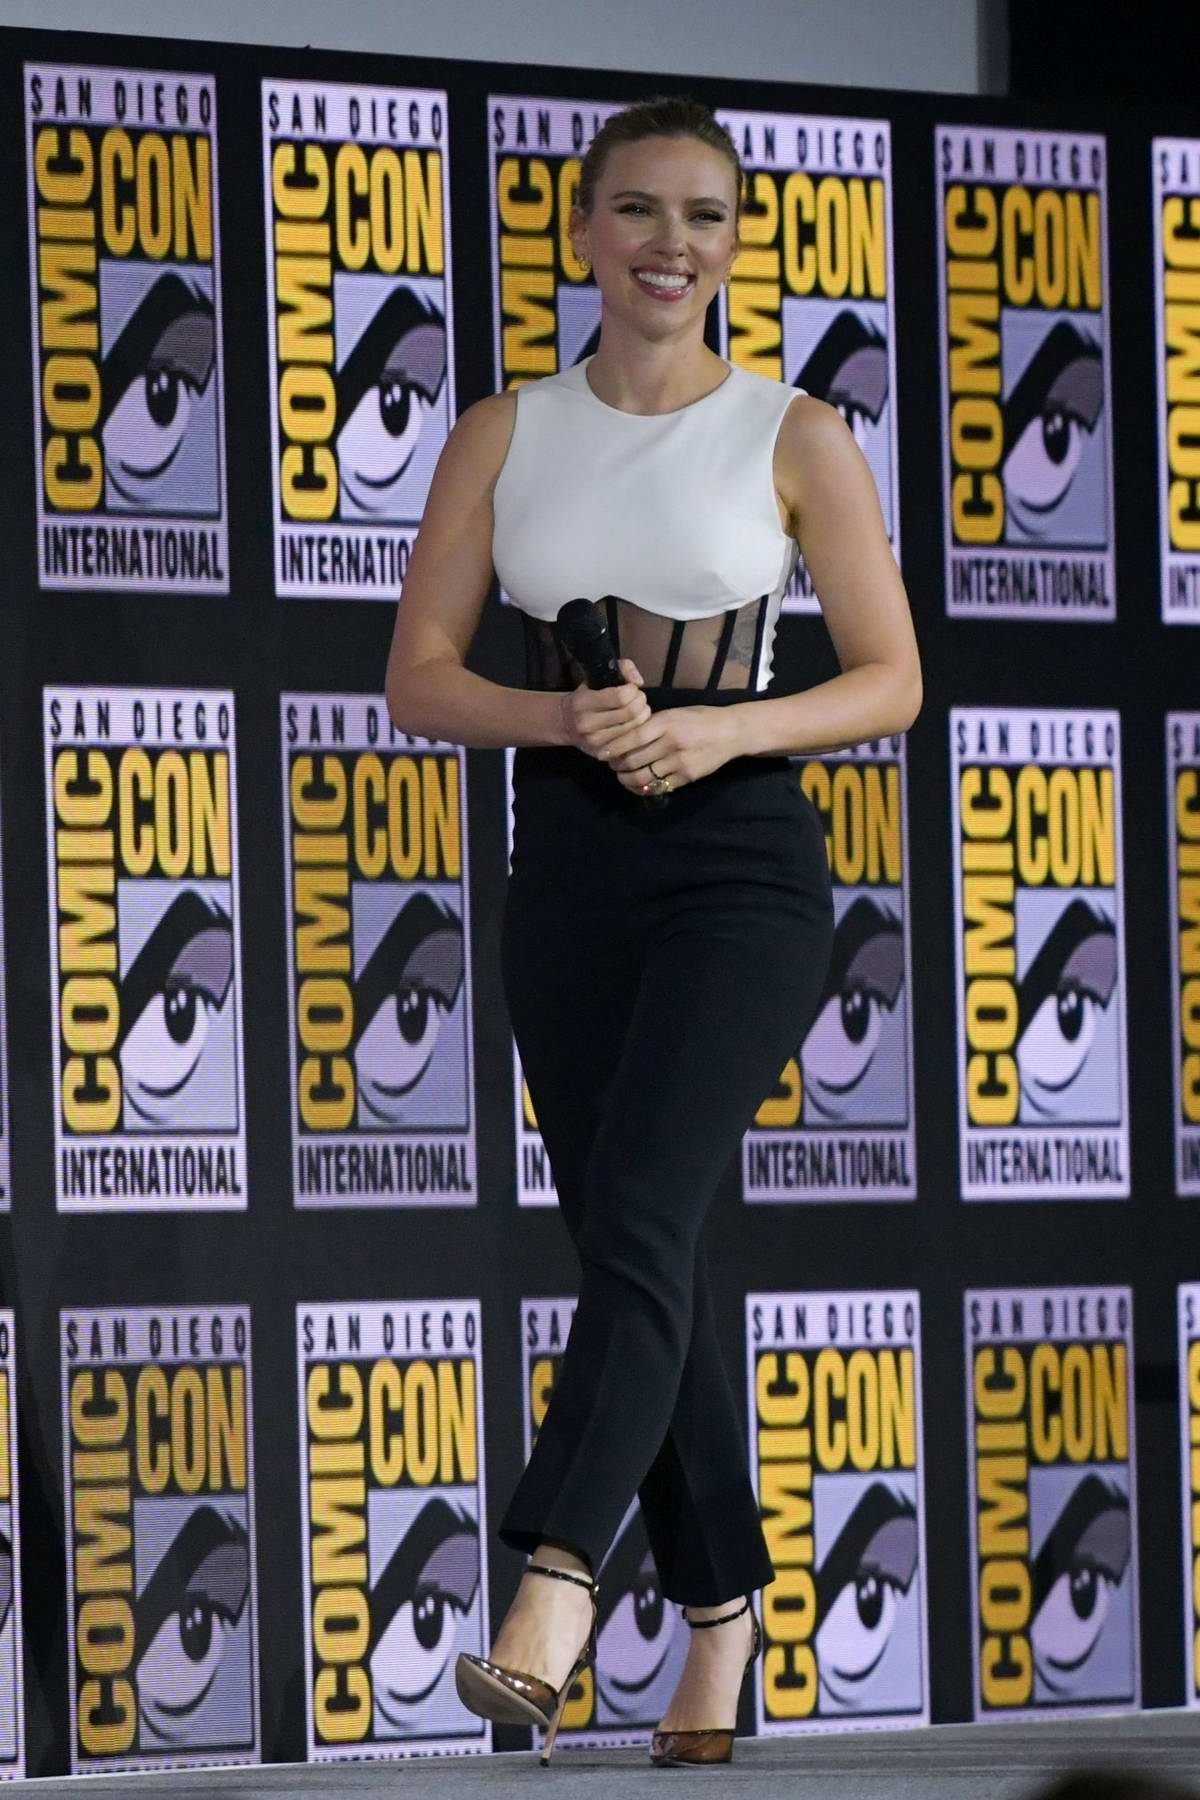 Scarlett Johansson attends the 'Marvel' panel during 2019 Comic Con International in San Diego, California